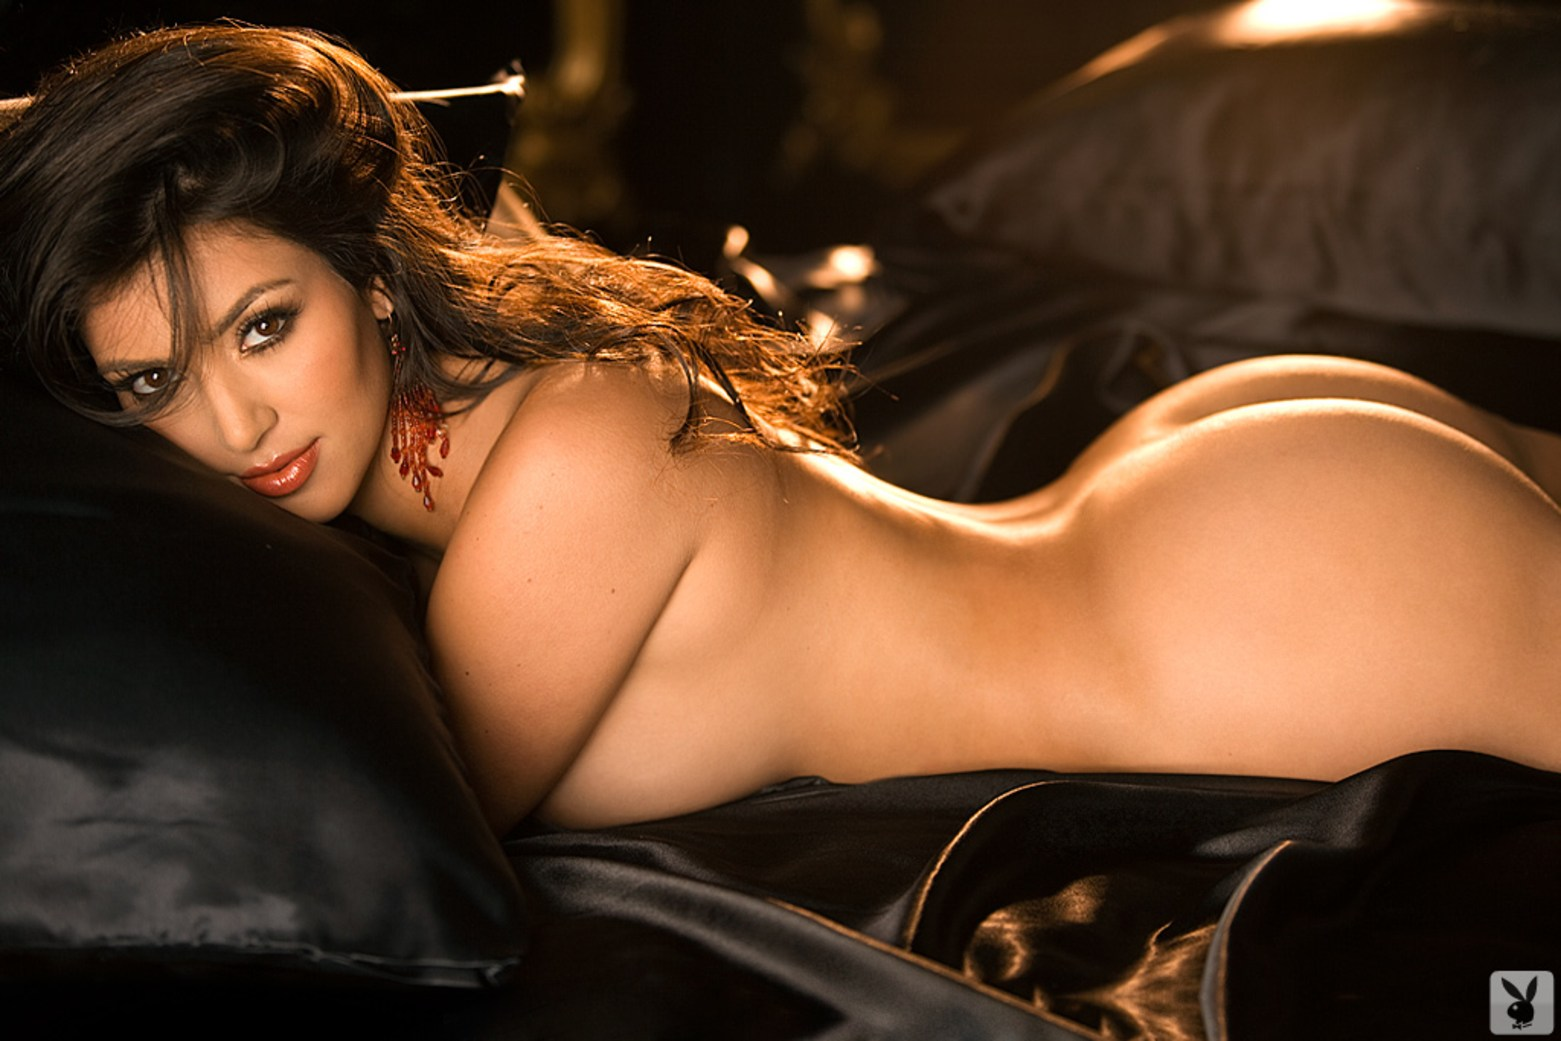 Kim Kardashian Playboy December 2007